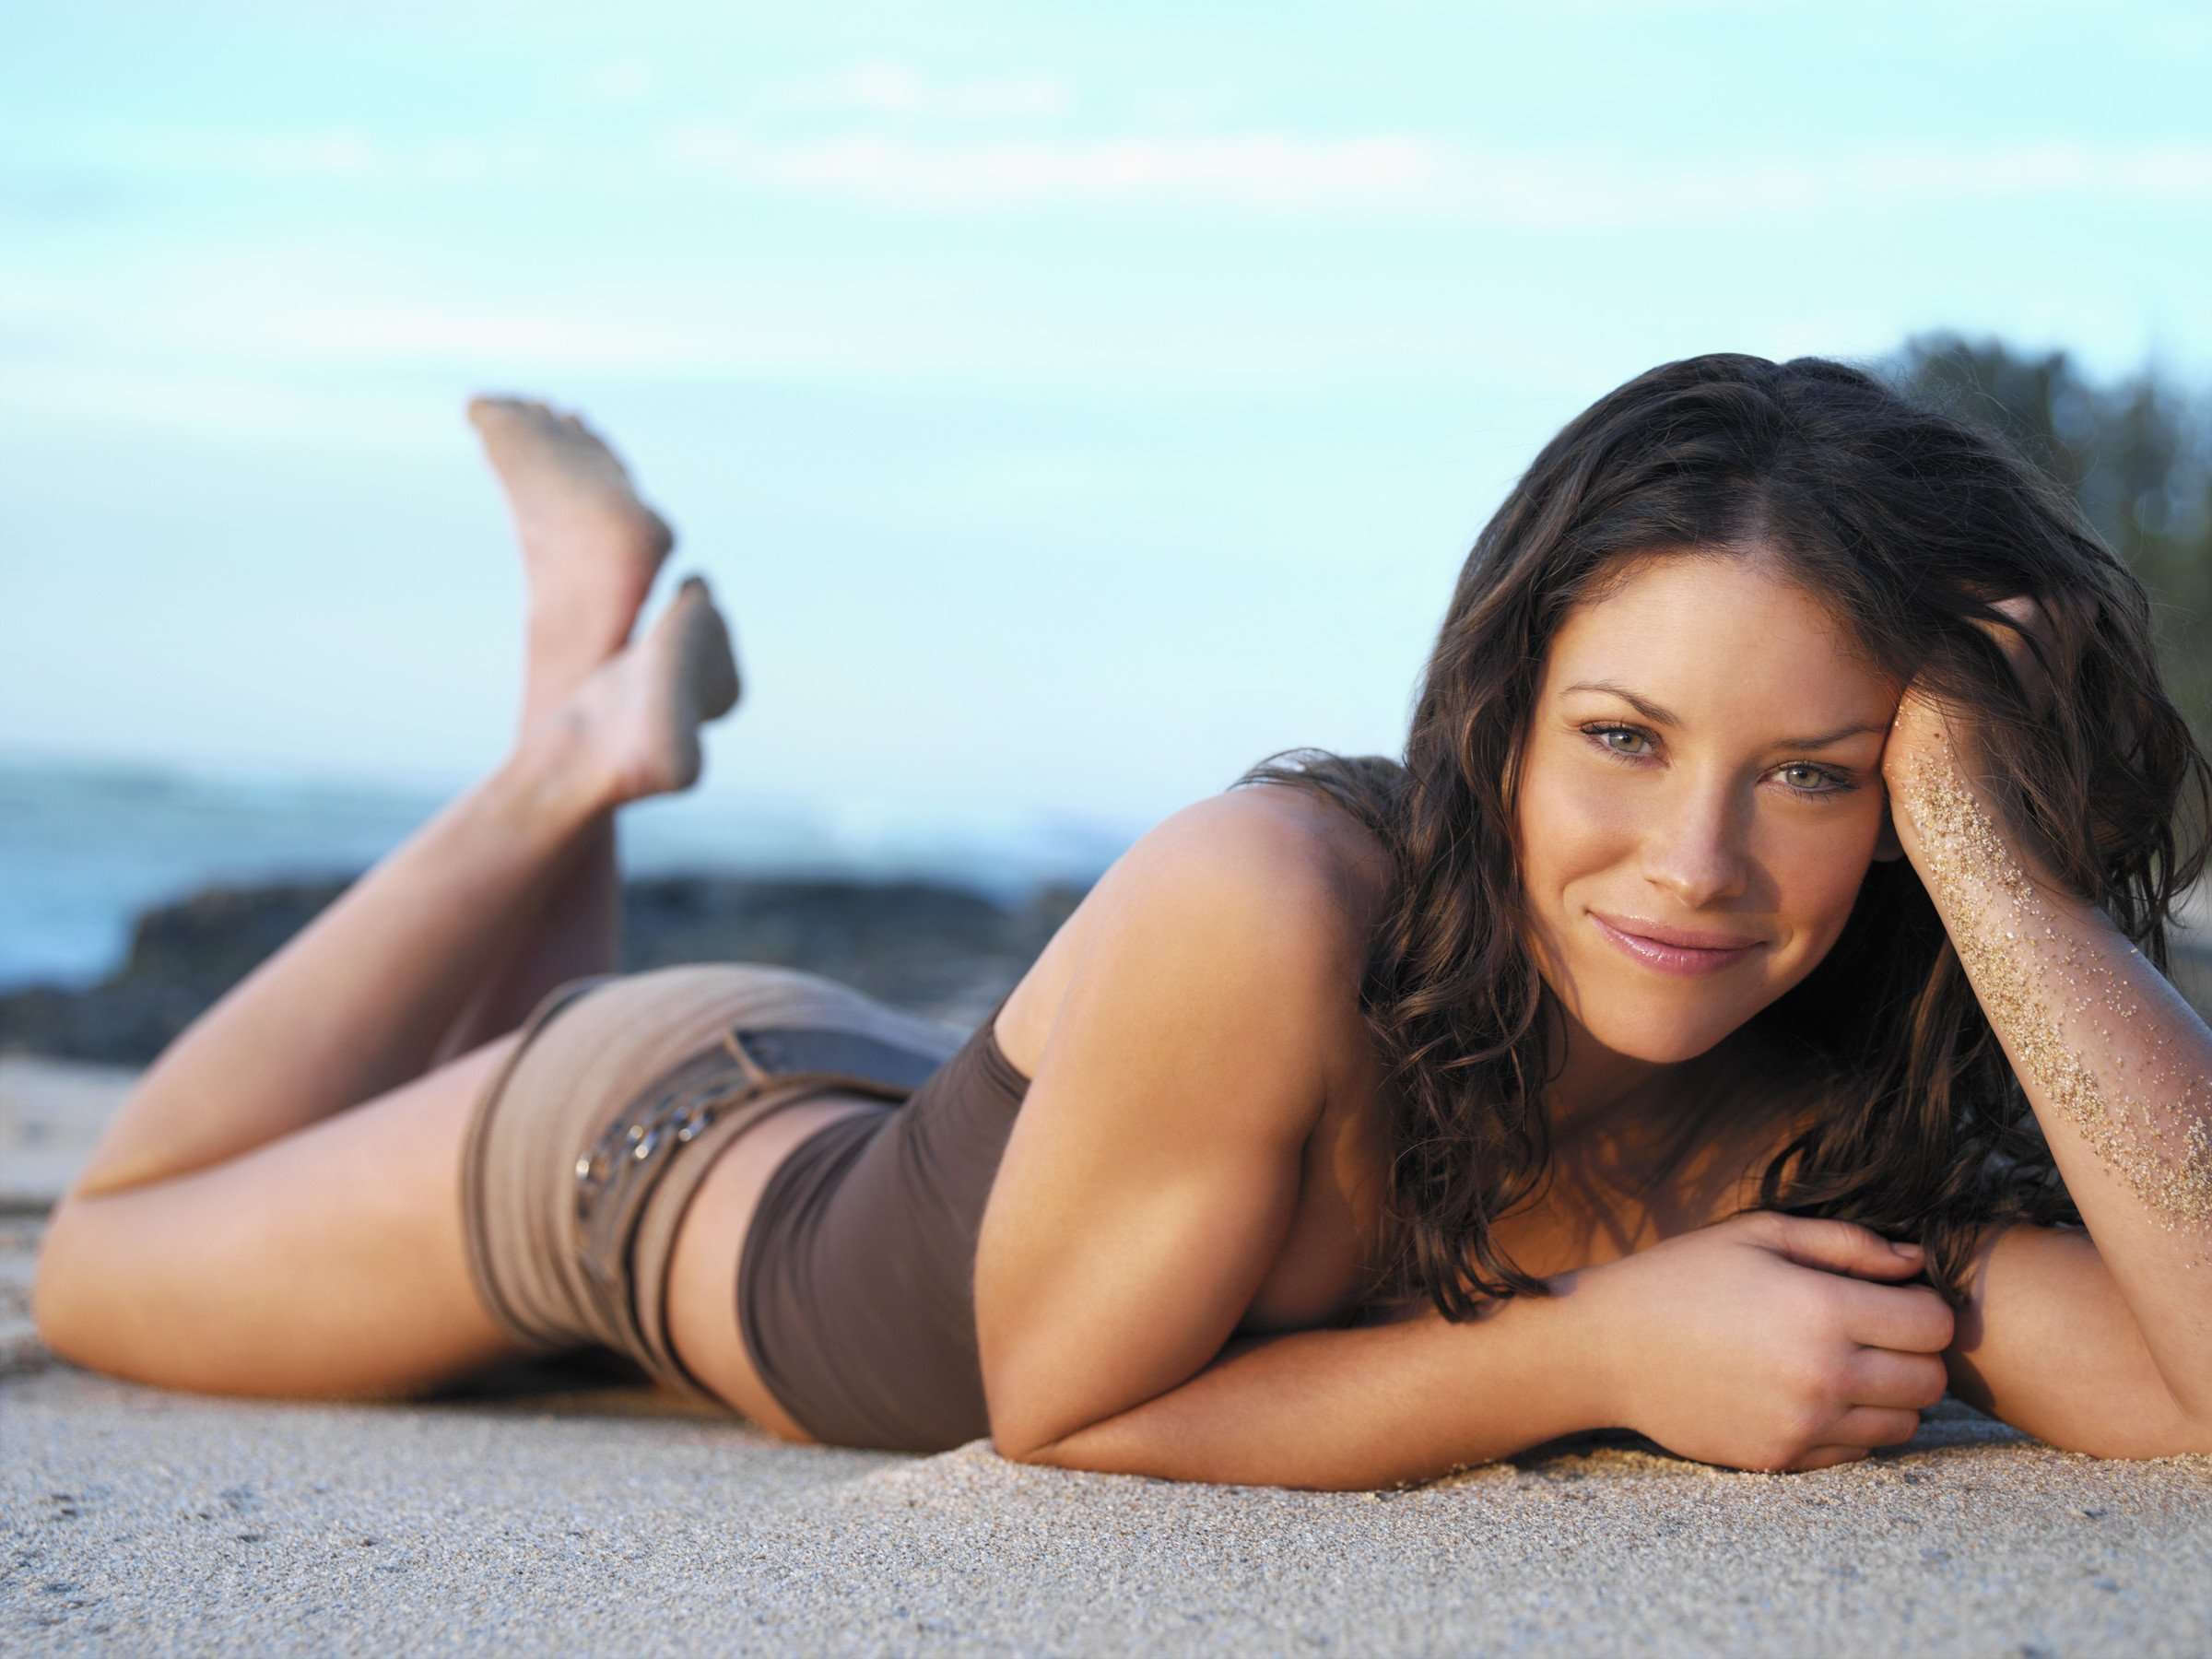 69e_Evangeline_Lilly__TV_Guide_photoshoot